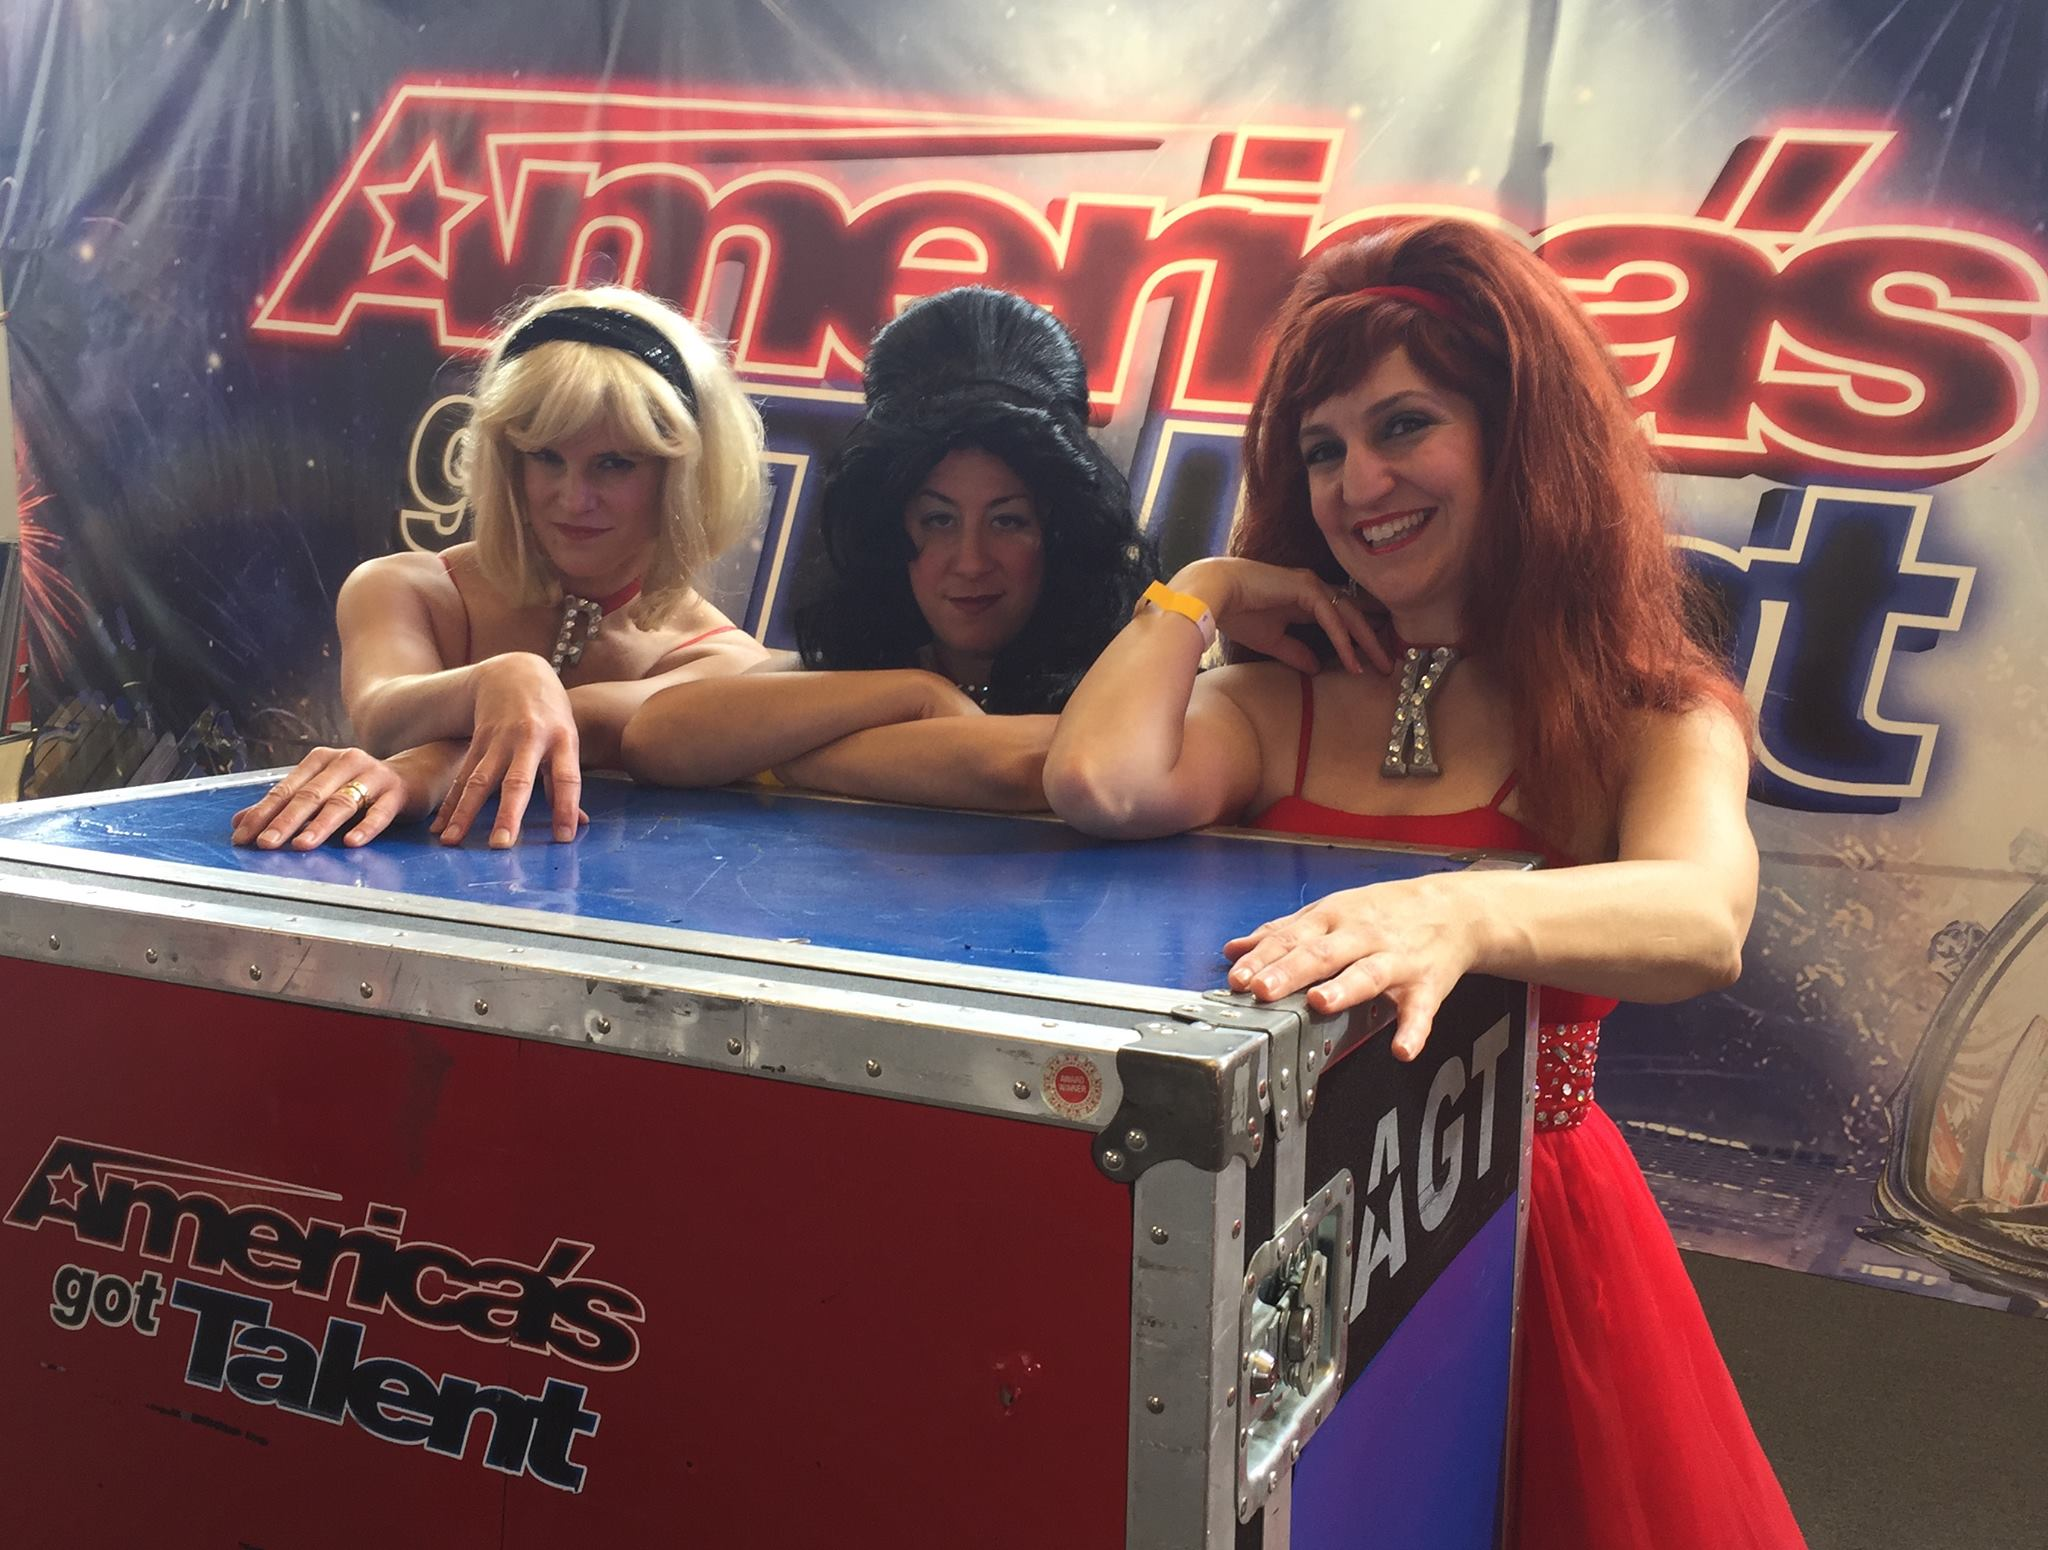 Backstage America's Got Talent